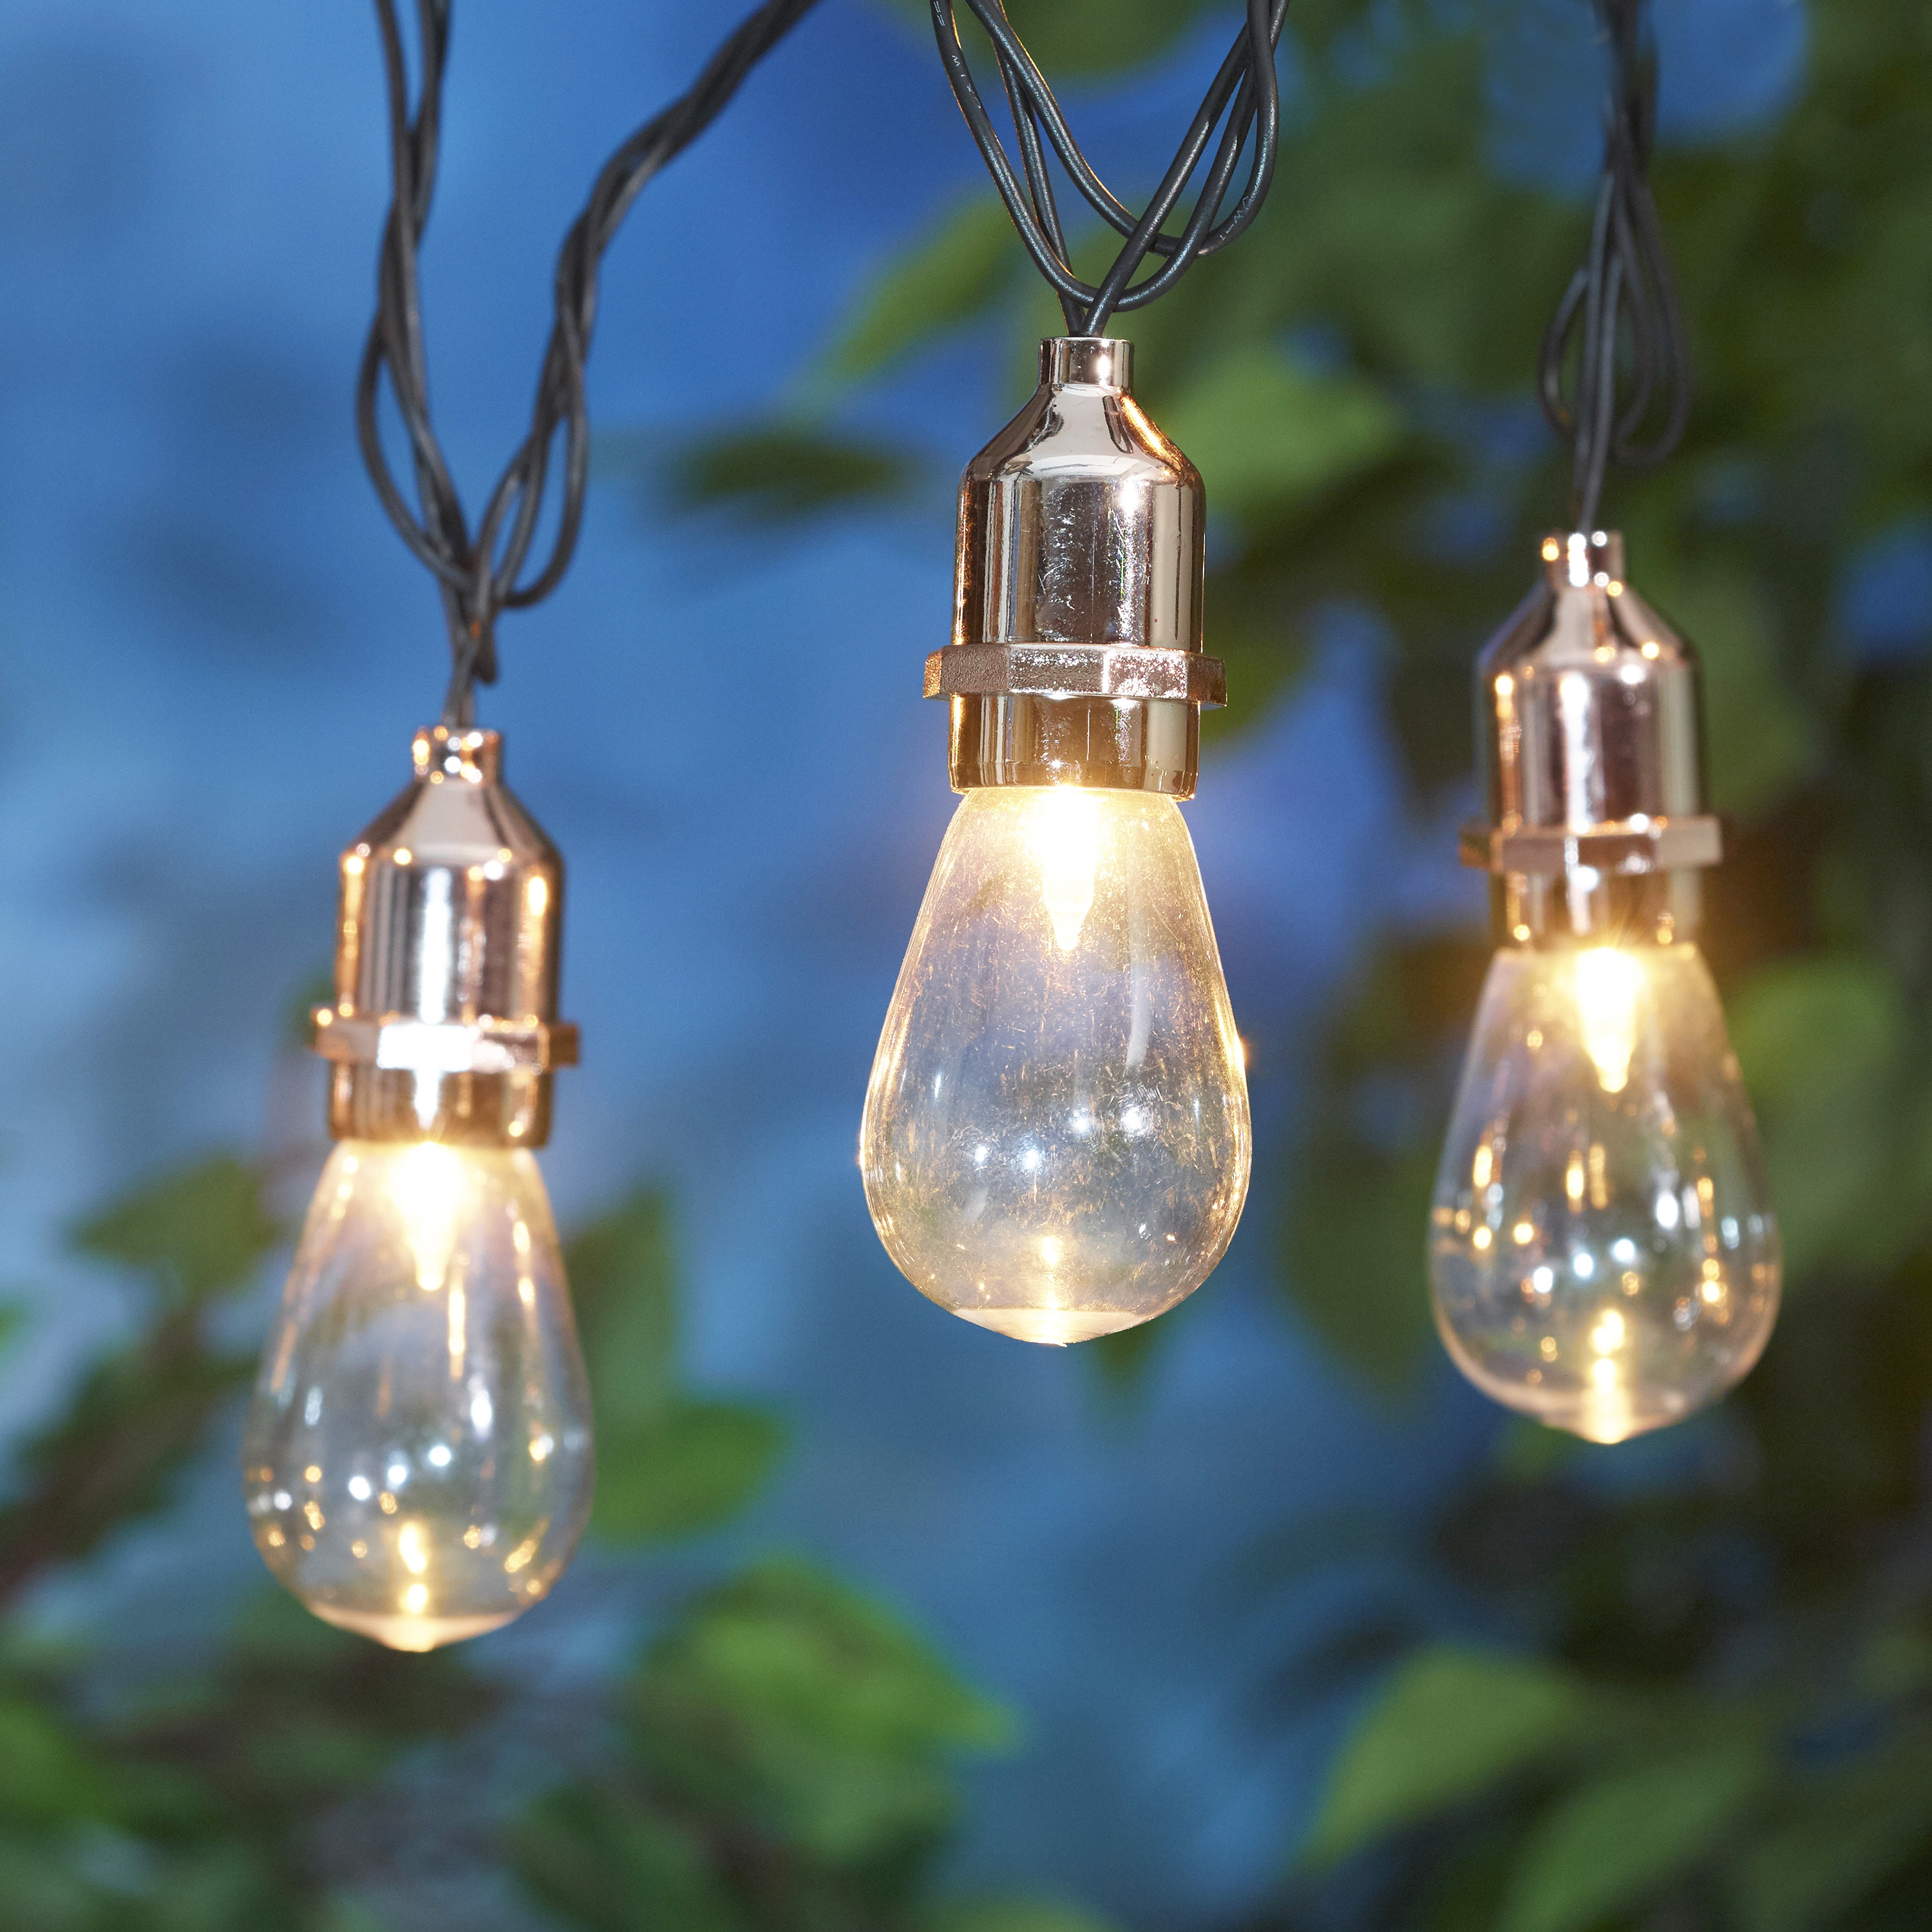 Mainstays Winnfield Edison Bulb Outdoor Light Set